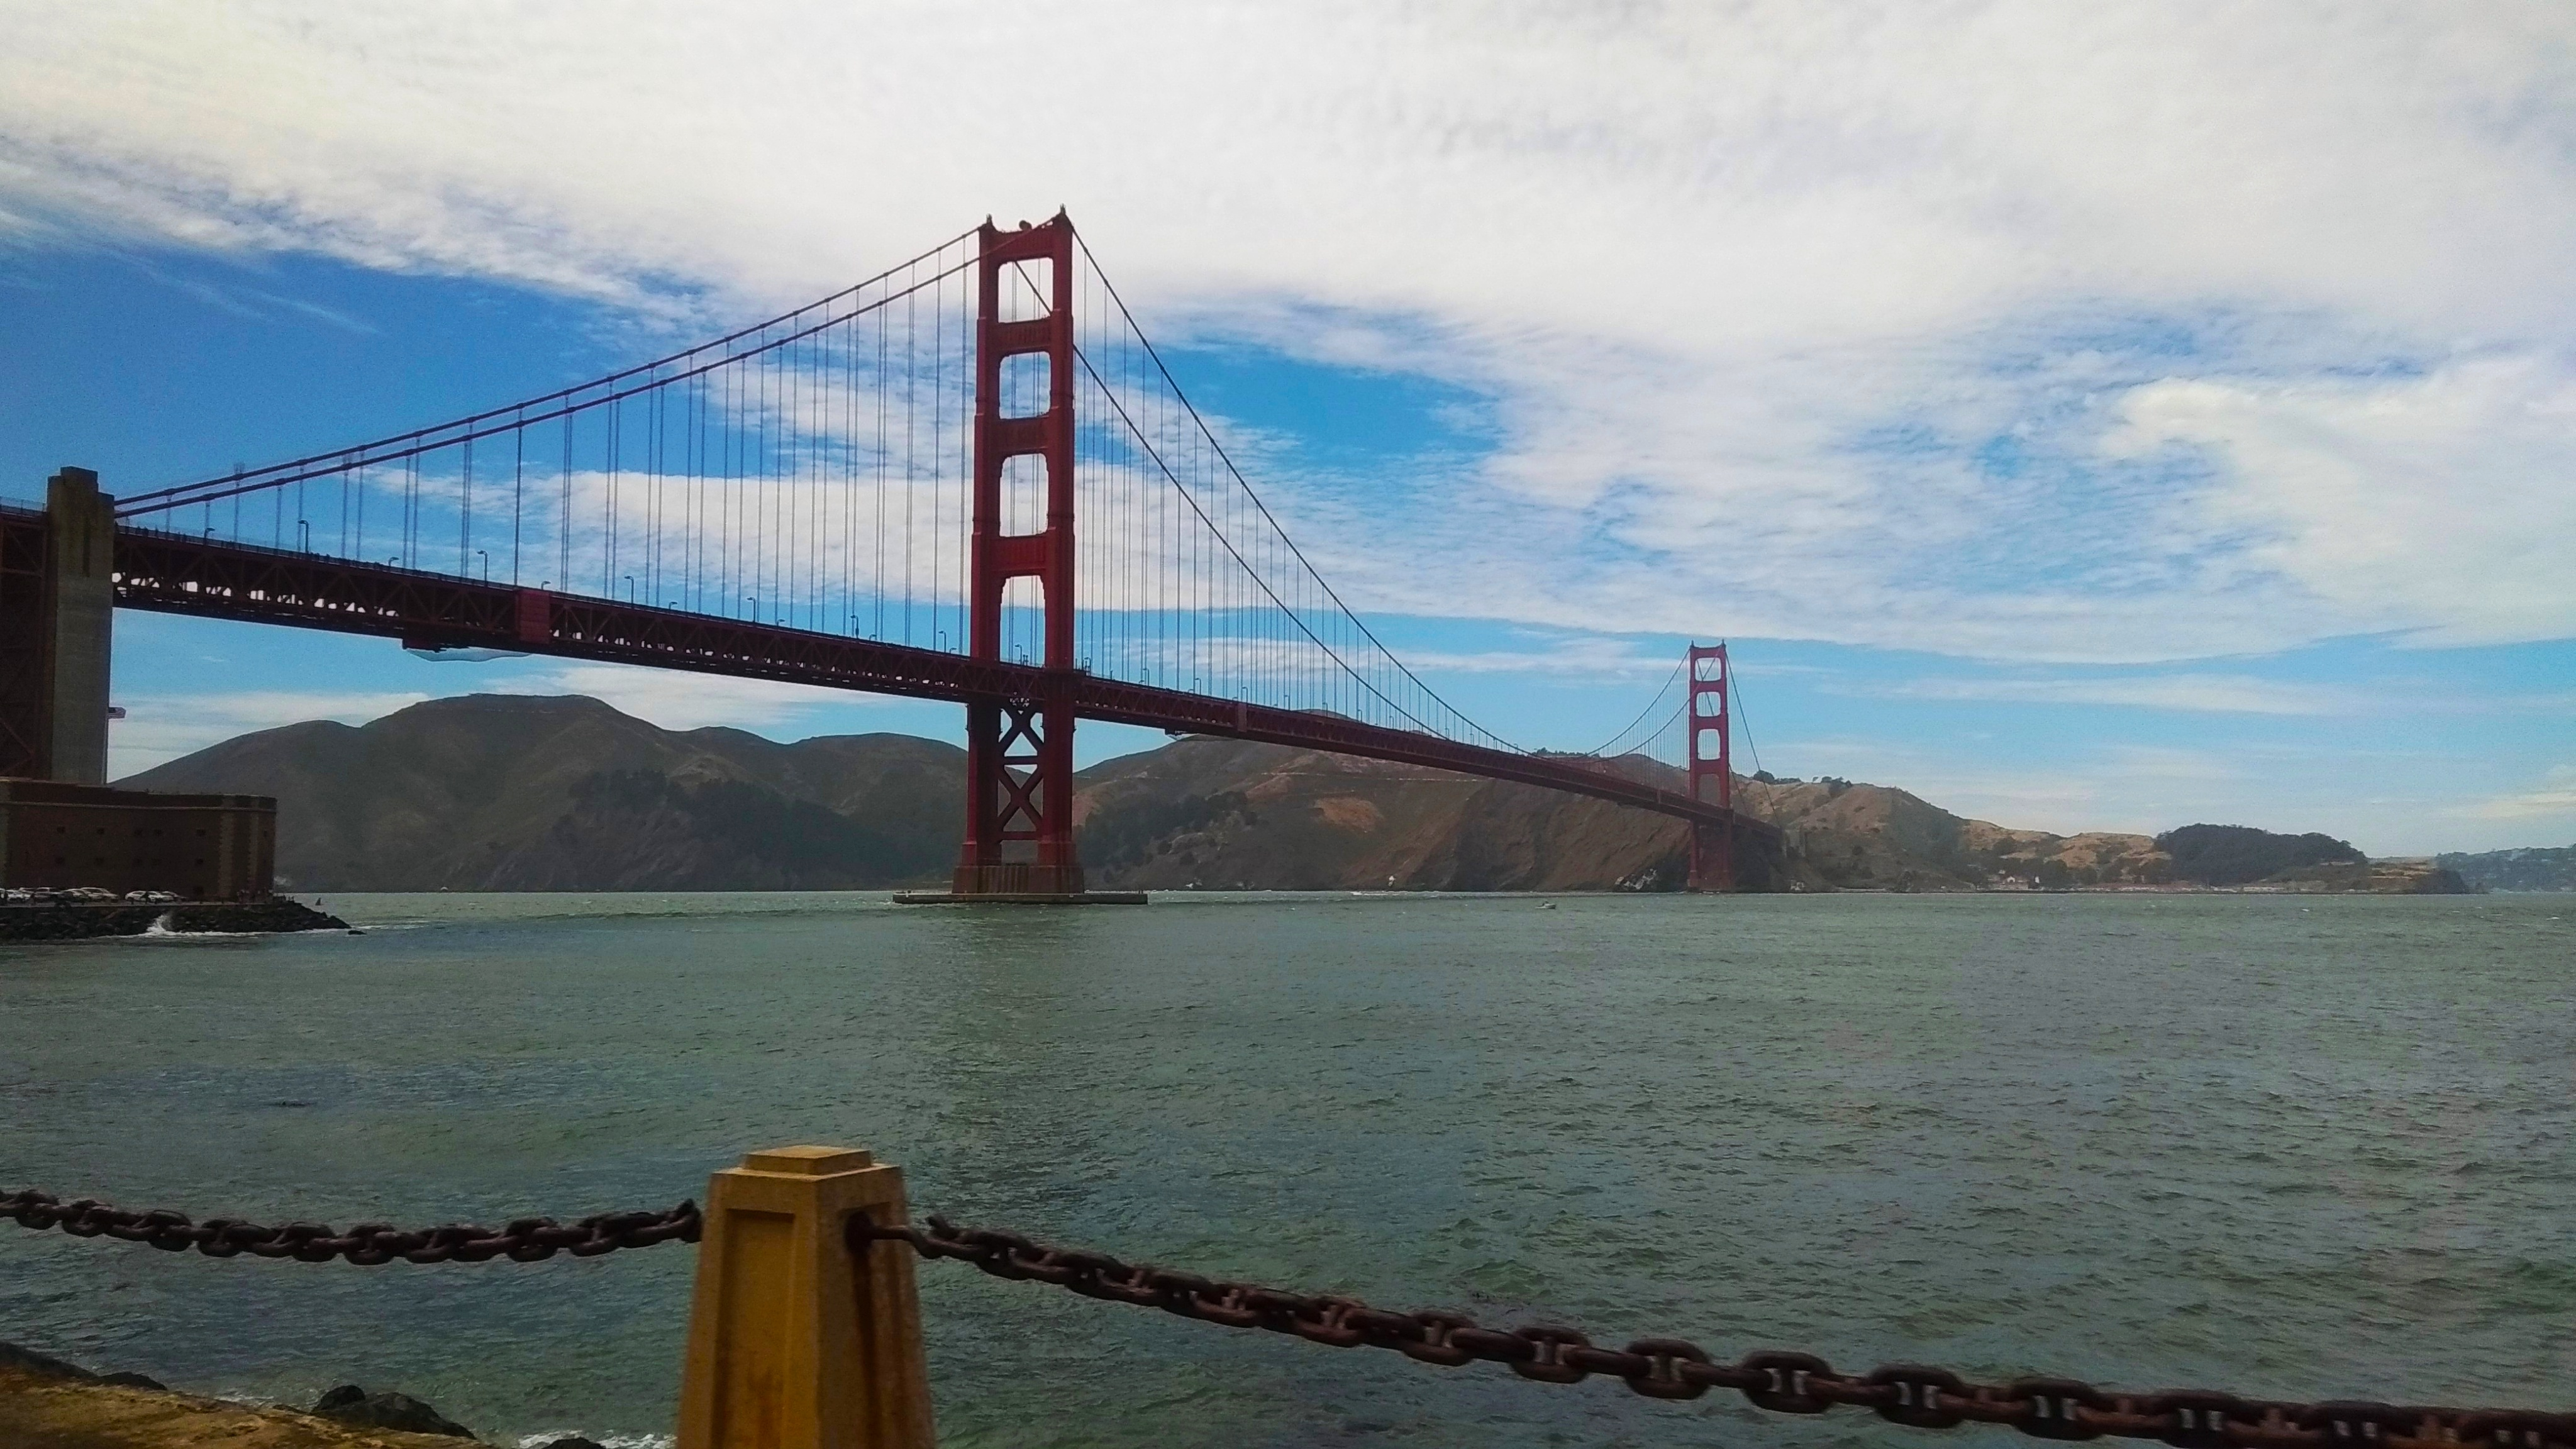 moby-dick-by-the-golden-gate-bridge-photos